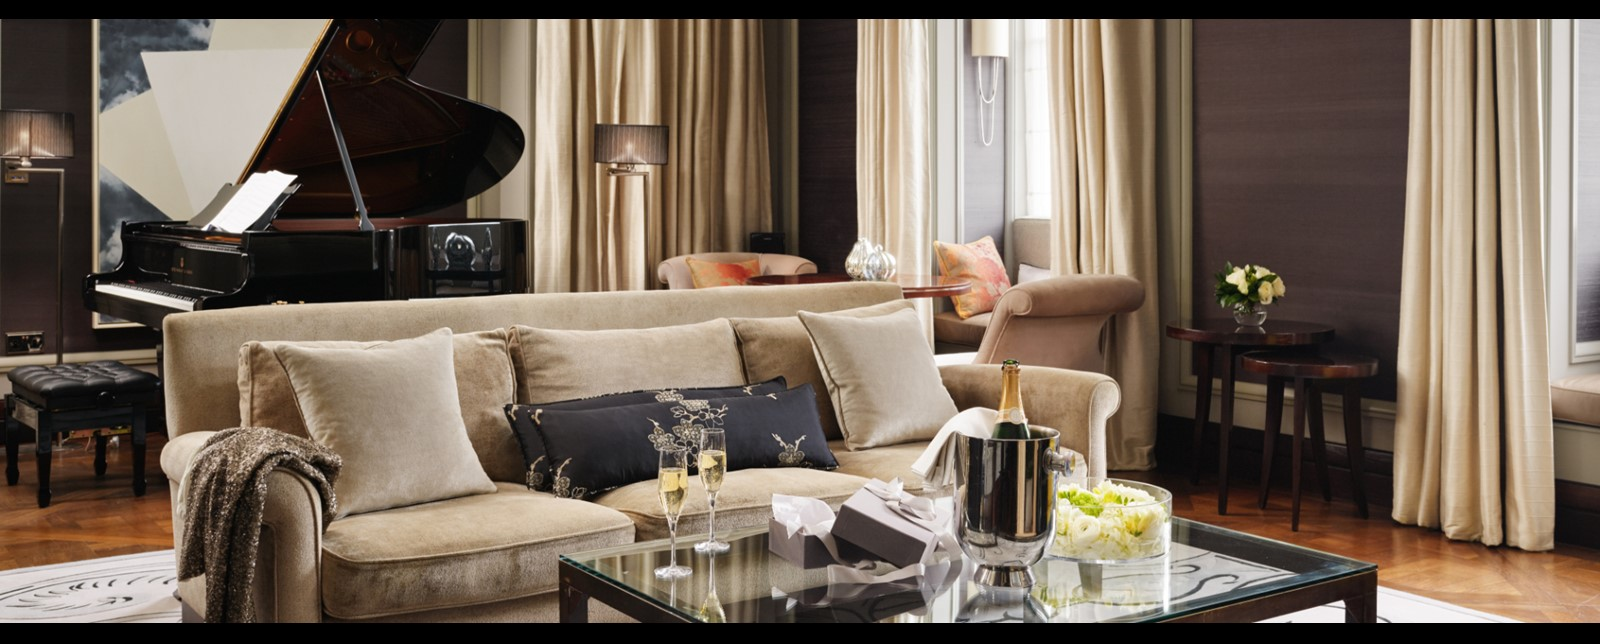 corinthia london musicians penthouse